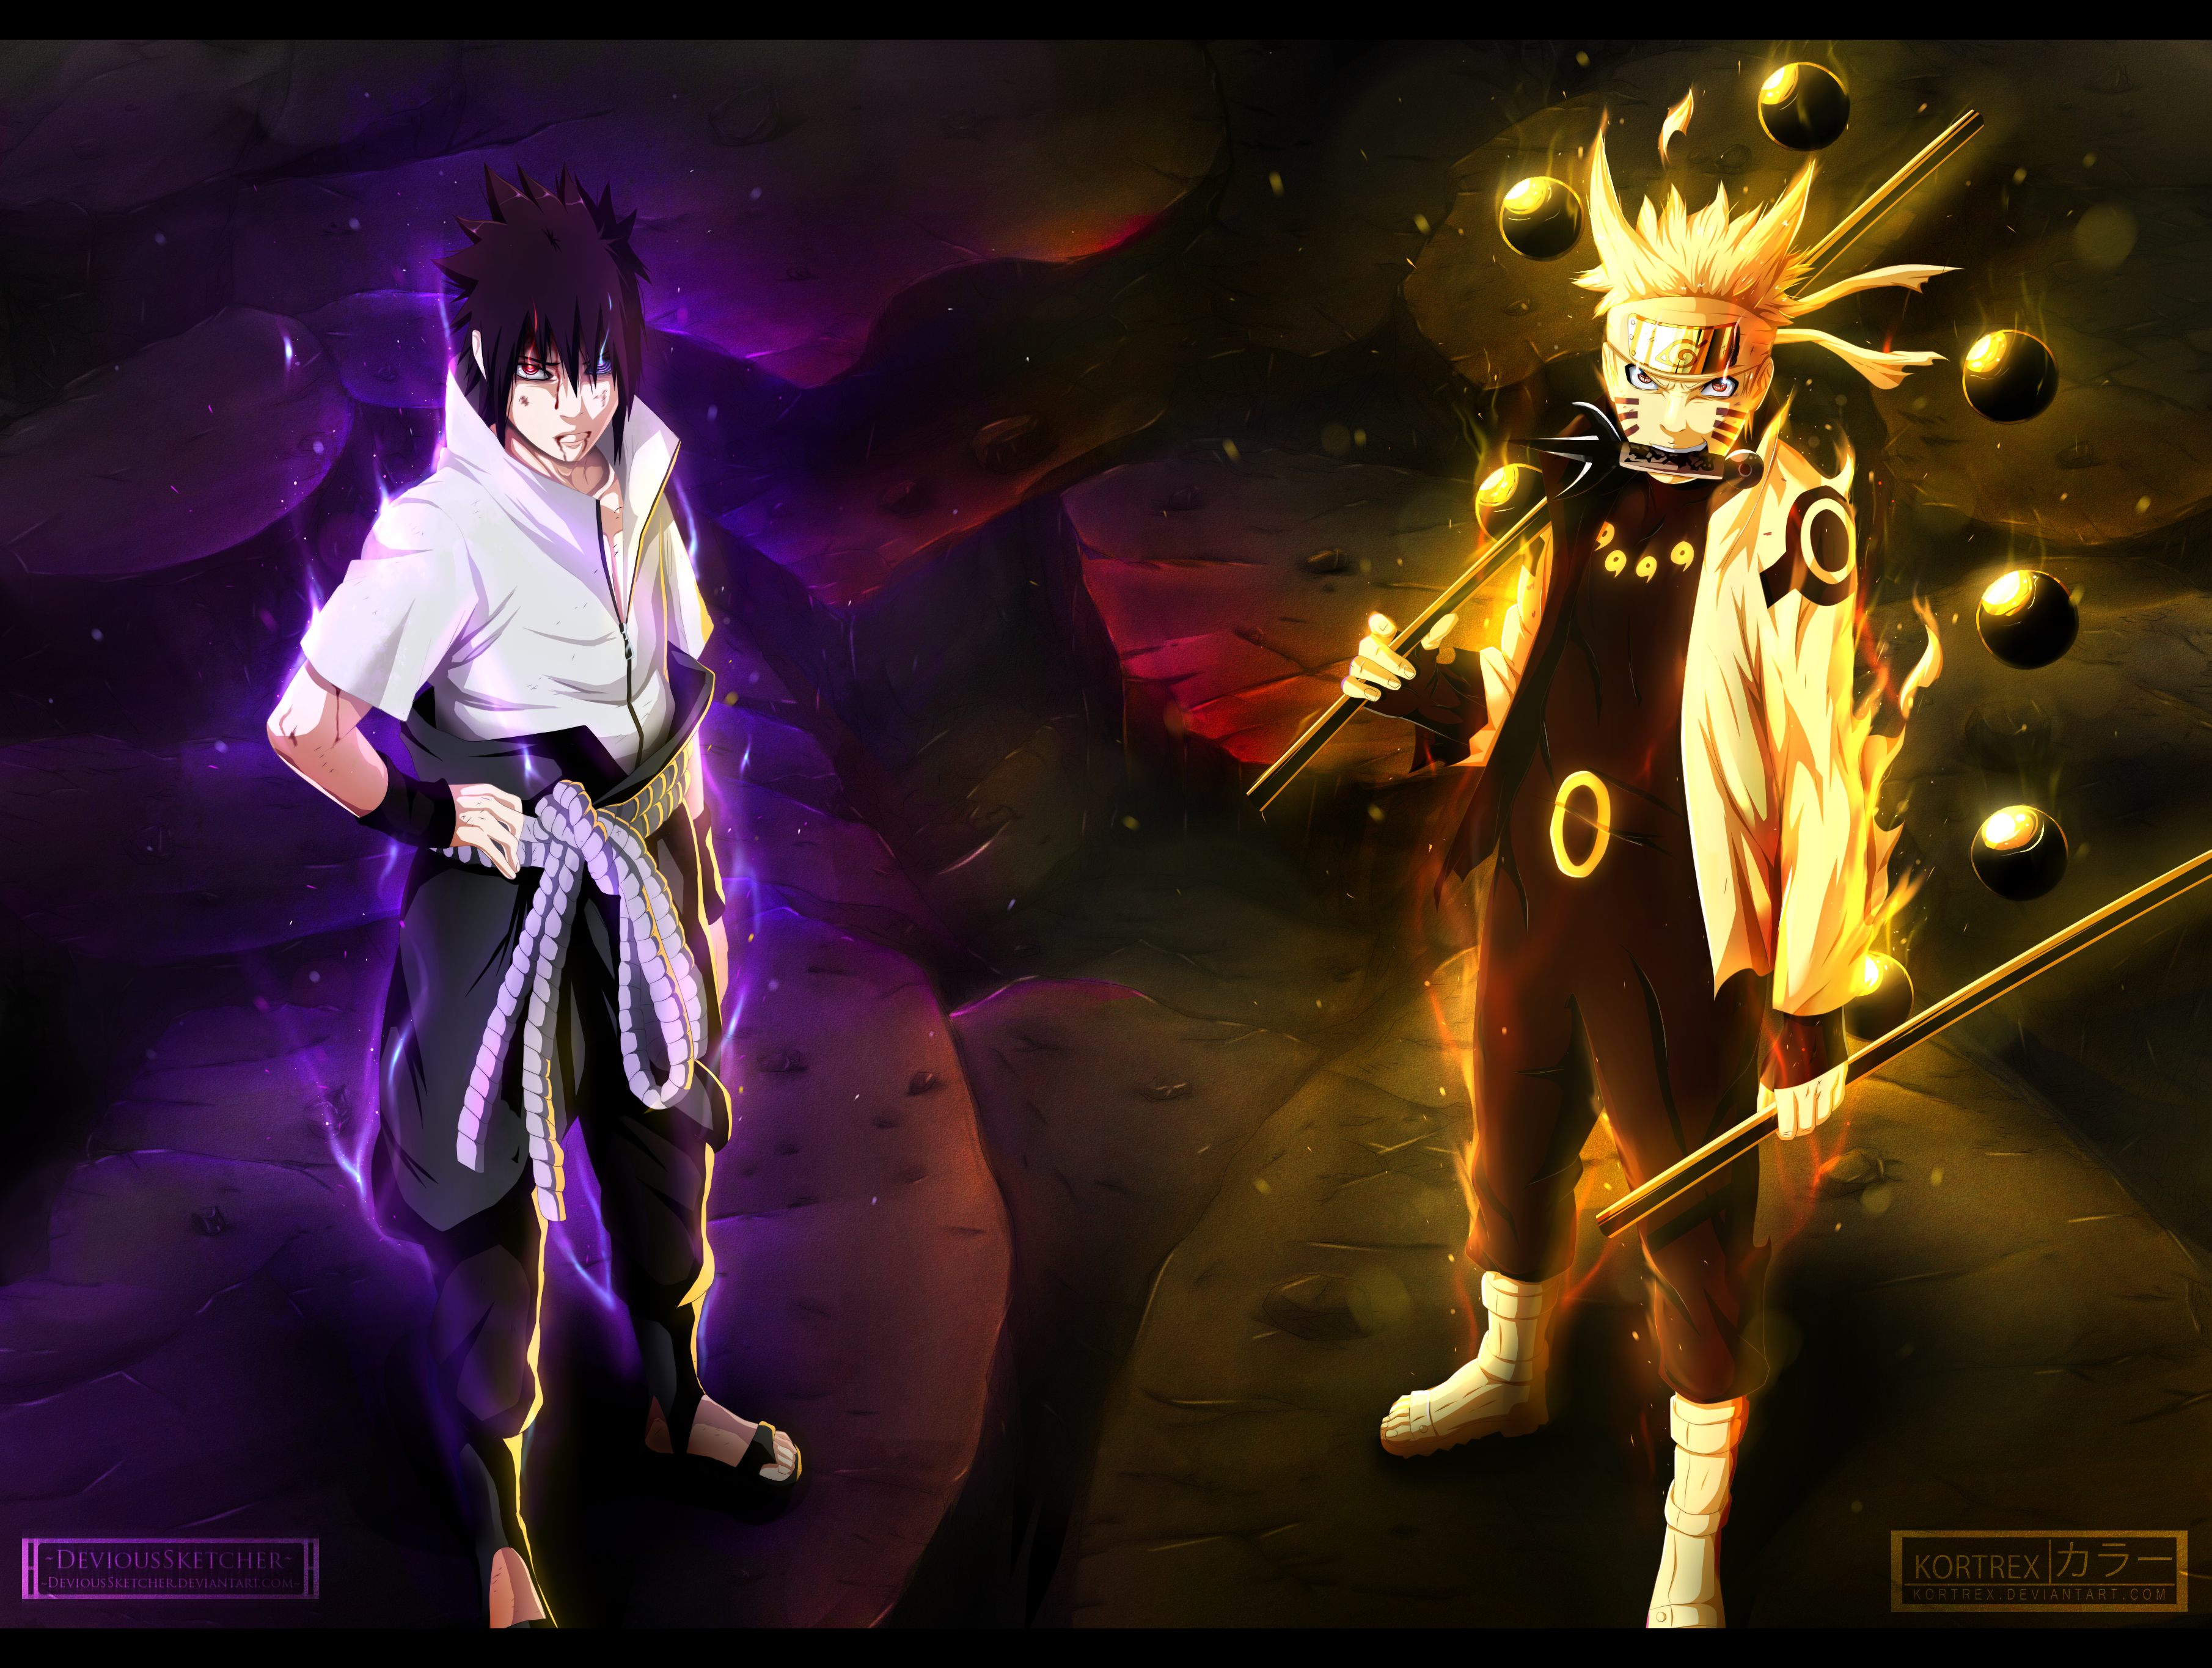 Naruto 673 We Will Defeat You Collab By Devioussketcher